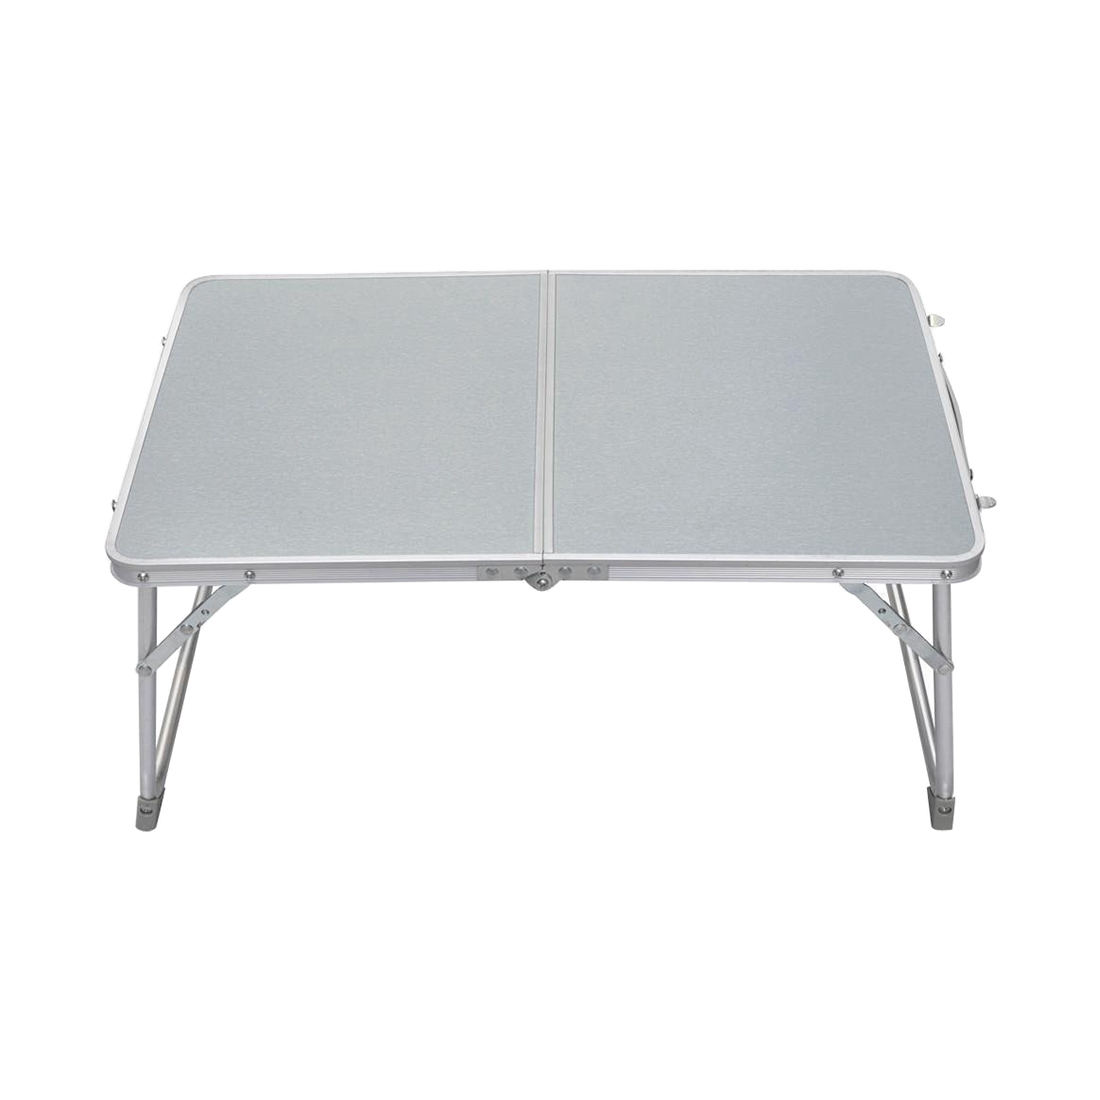 Small 62x41x28cm/24.4x16.1x11 PC Laptop Table Bed Desk Camping Picnic BBQ (Silver White)Small 62x41x28cm/24.4x16.1x11 PC Laptop Table Bed Desk Camping Picnic BBQ (Silver White)